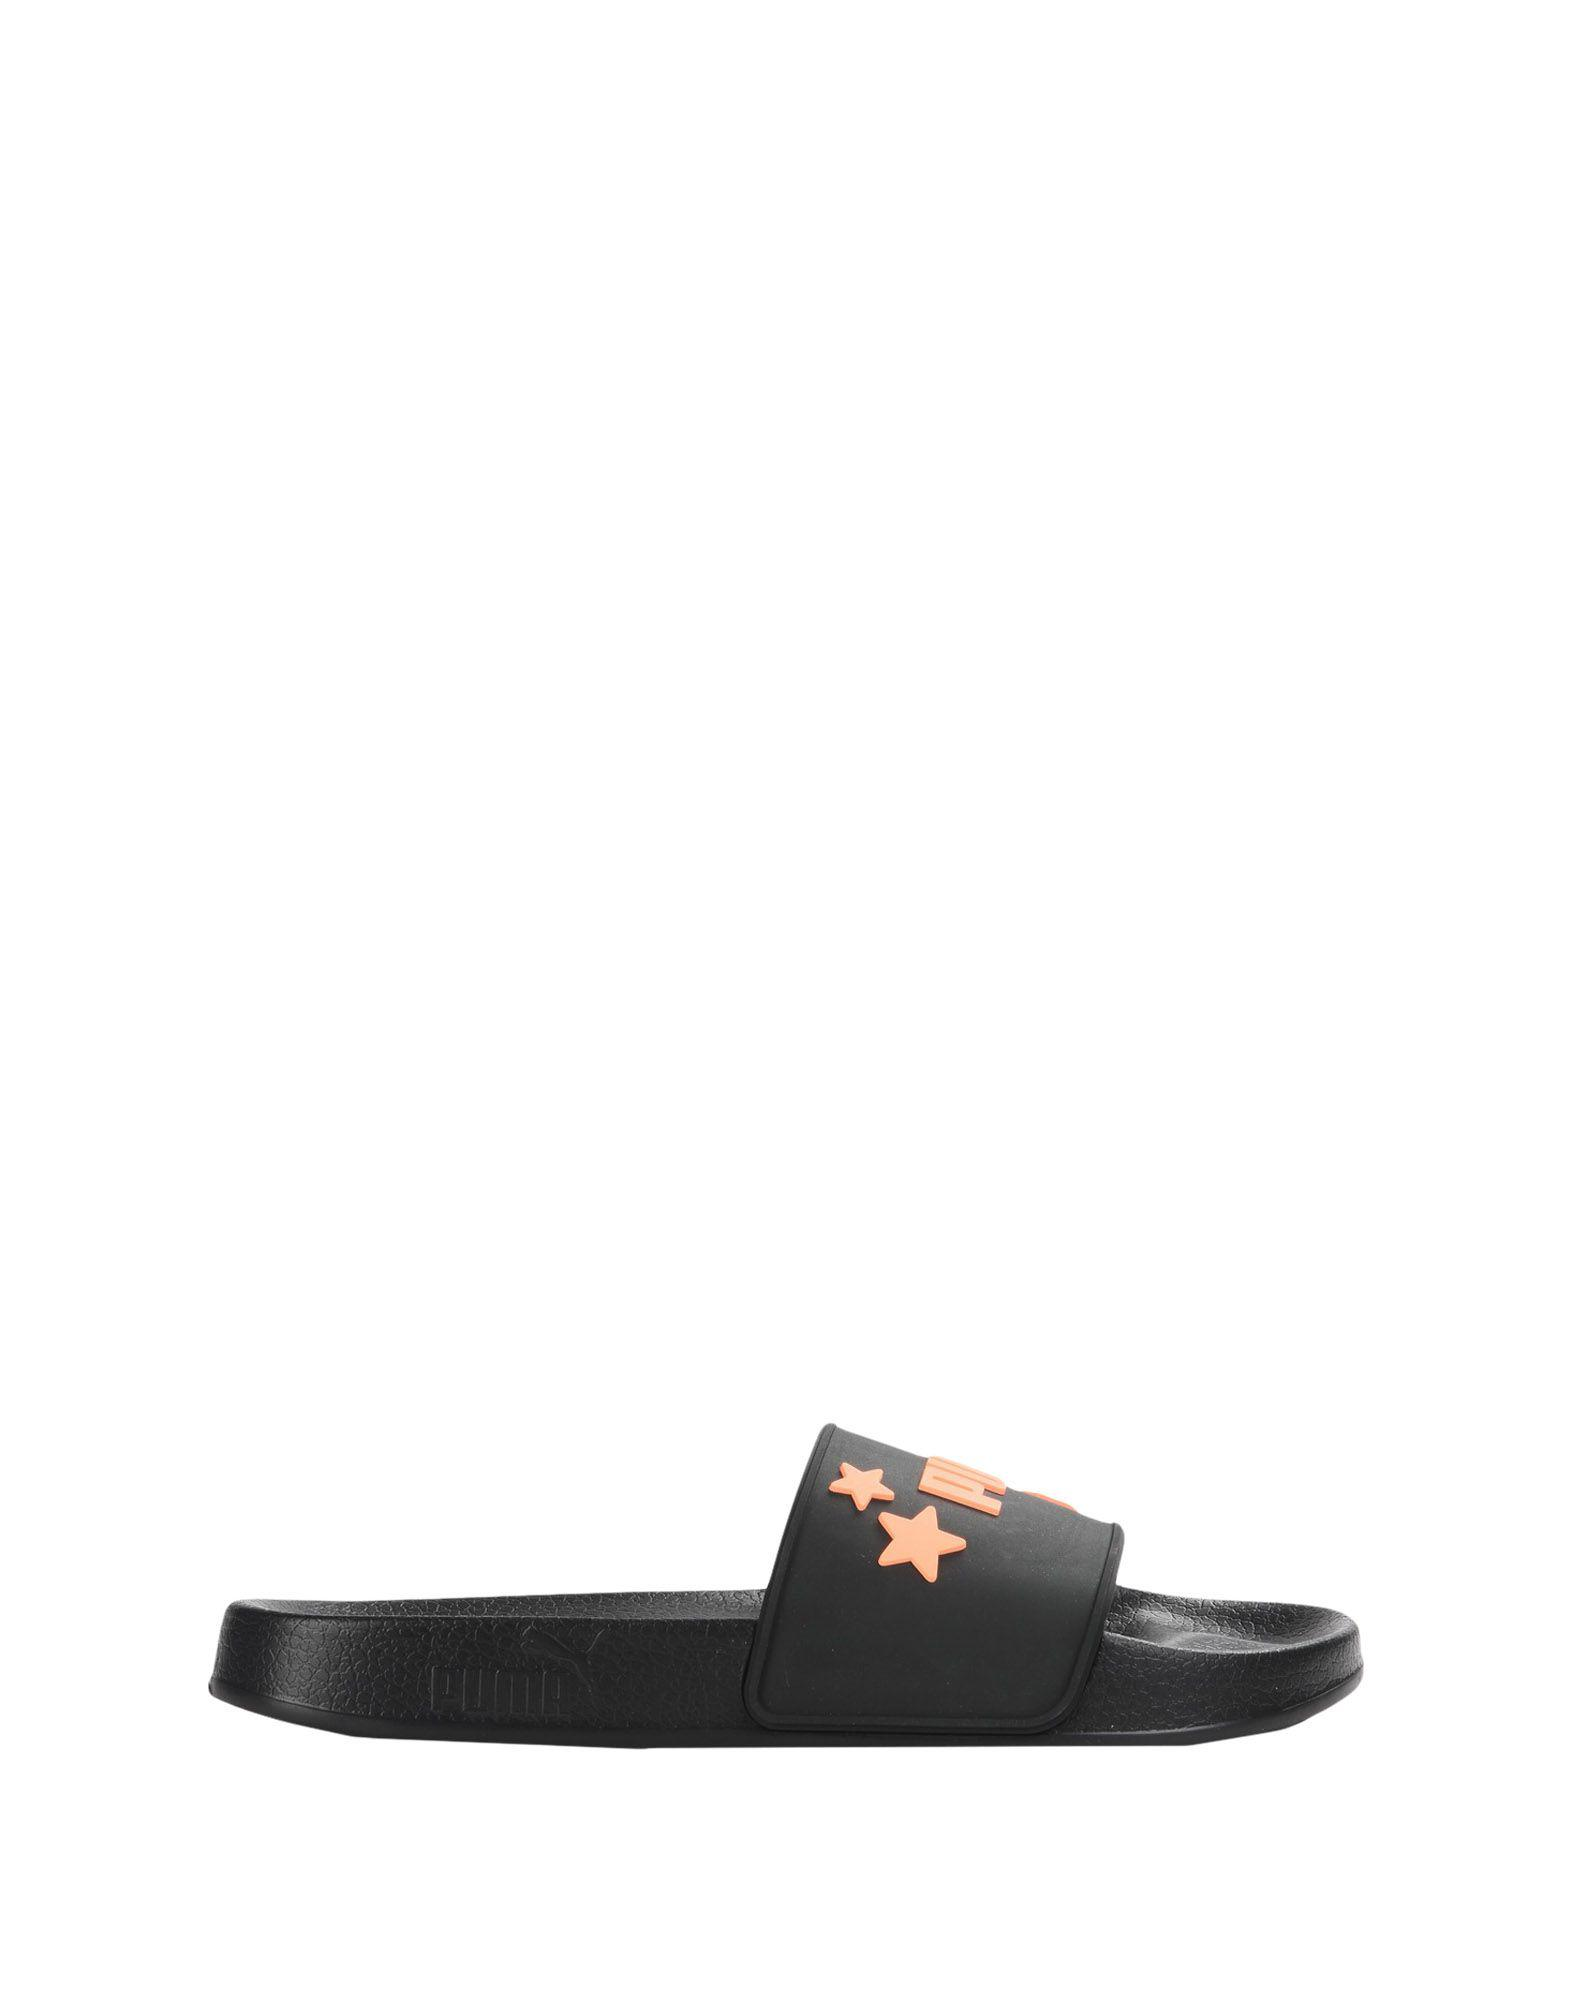 85a862d3d959f2 Lyst - PUMA Leadcat One-band Slide Sandal in Black - Save 61%